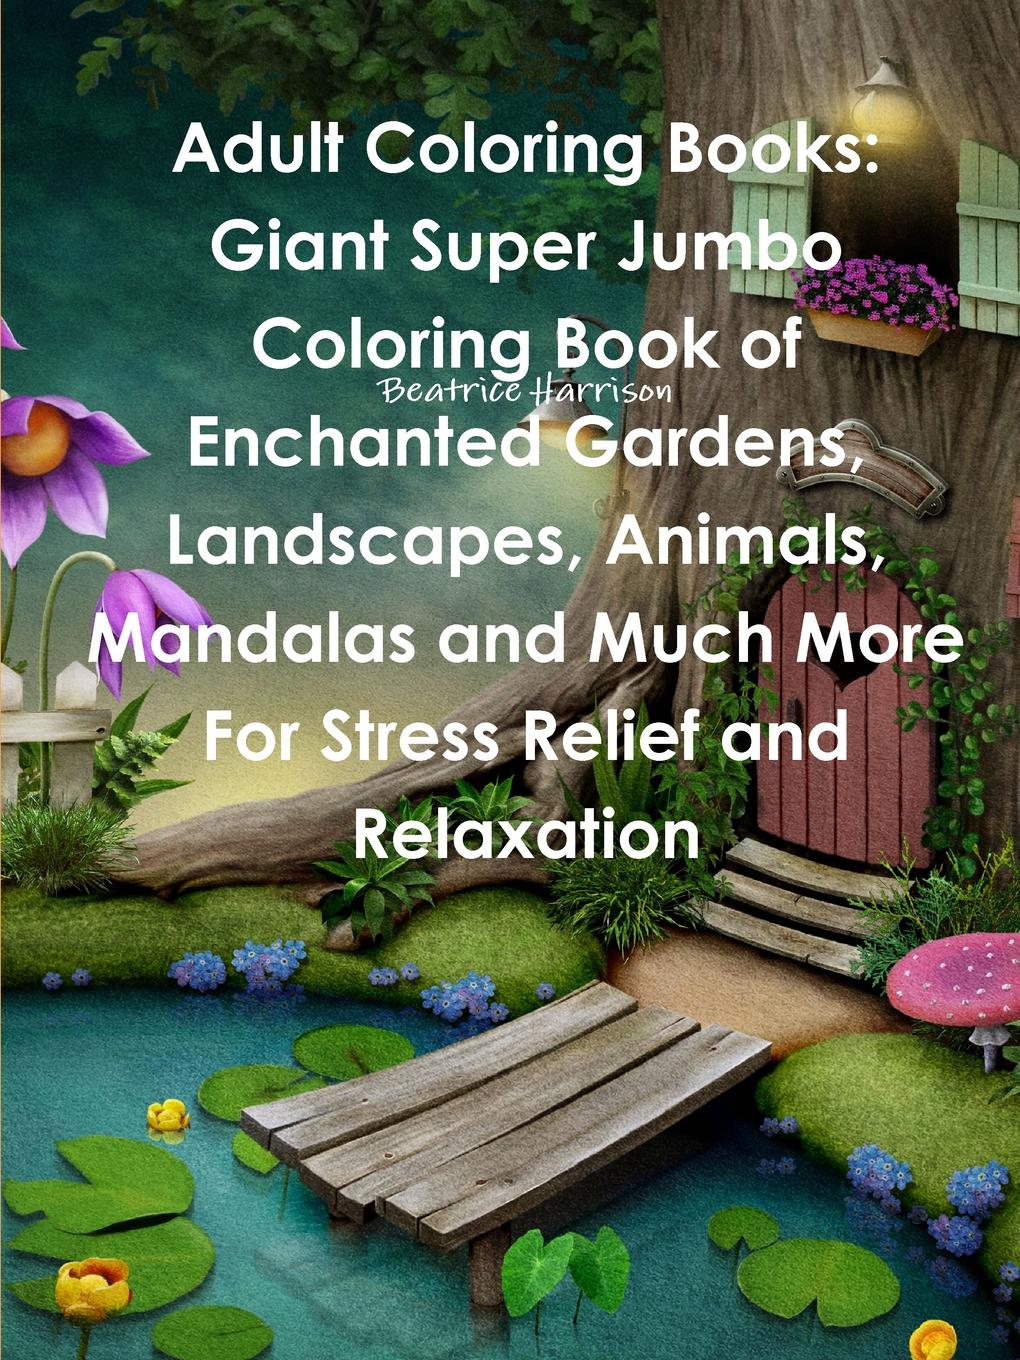 Beatrice Harrison Adult Coloring Books. Giant Super Jumbo Coloring Book of Enchanted Gardens, Landscapes, Animals, Mandalas and Much More For Stress Relief and Relaxation marion harney gardens and landscapes in historic building conservation